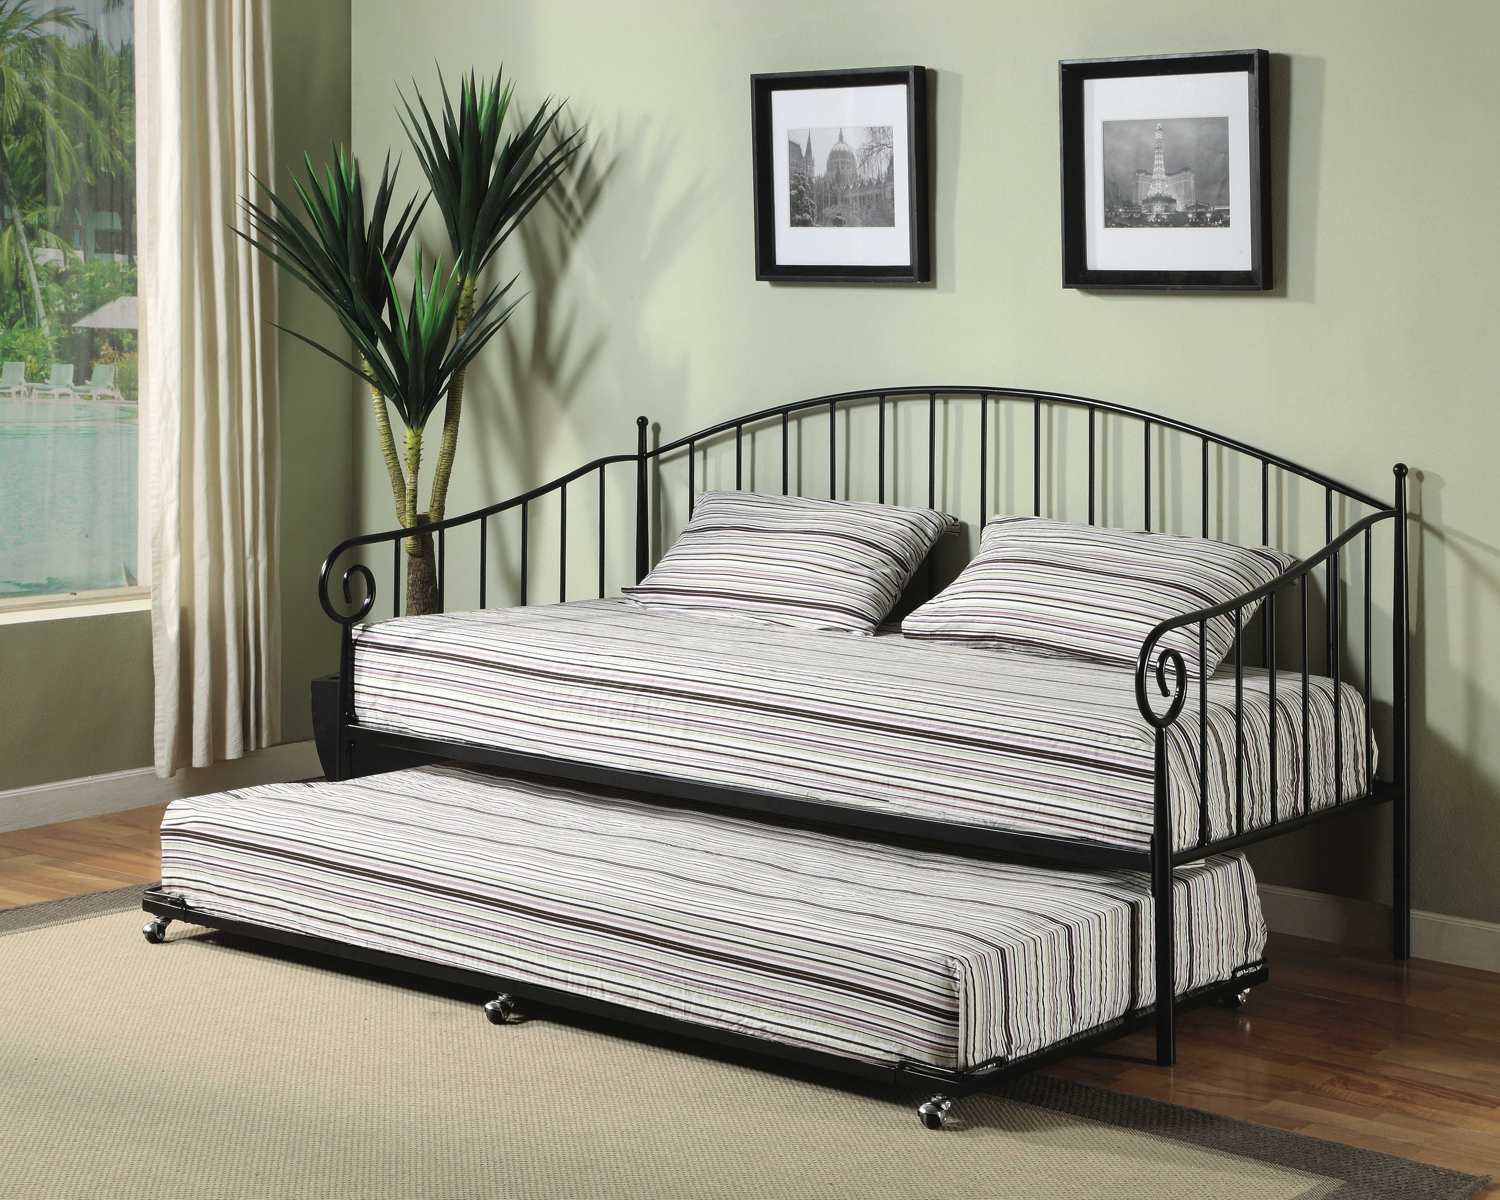 Image of: design of twin metal bed frame